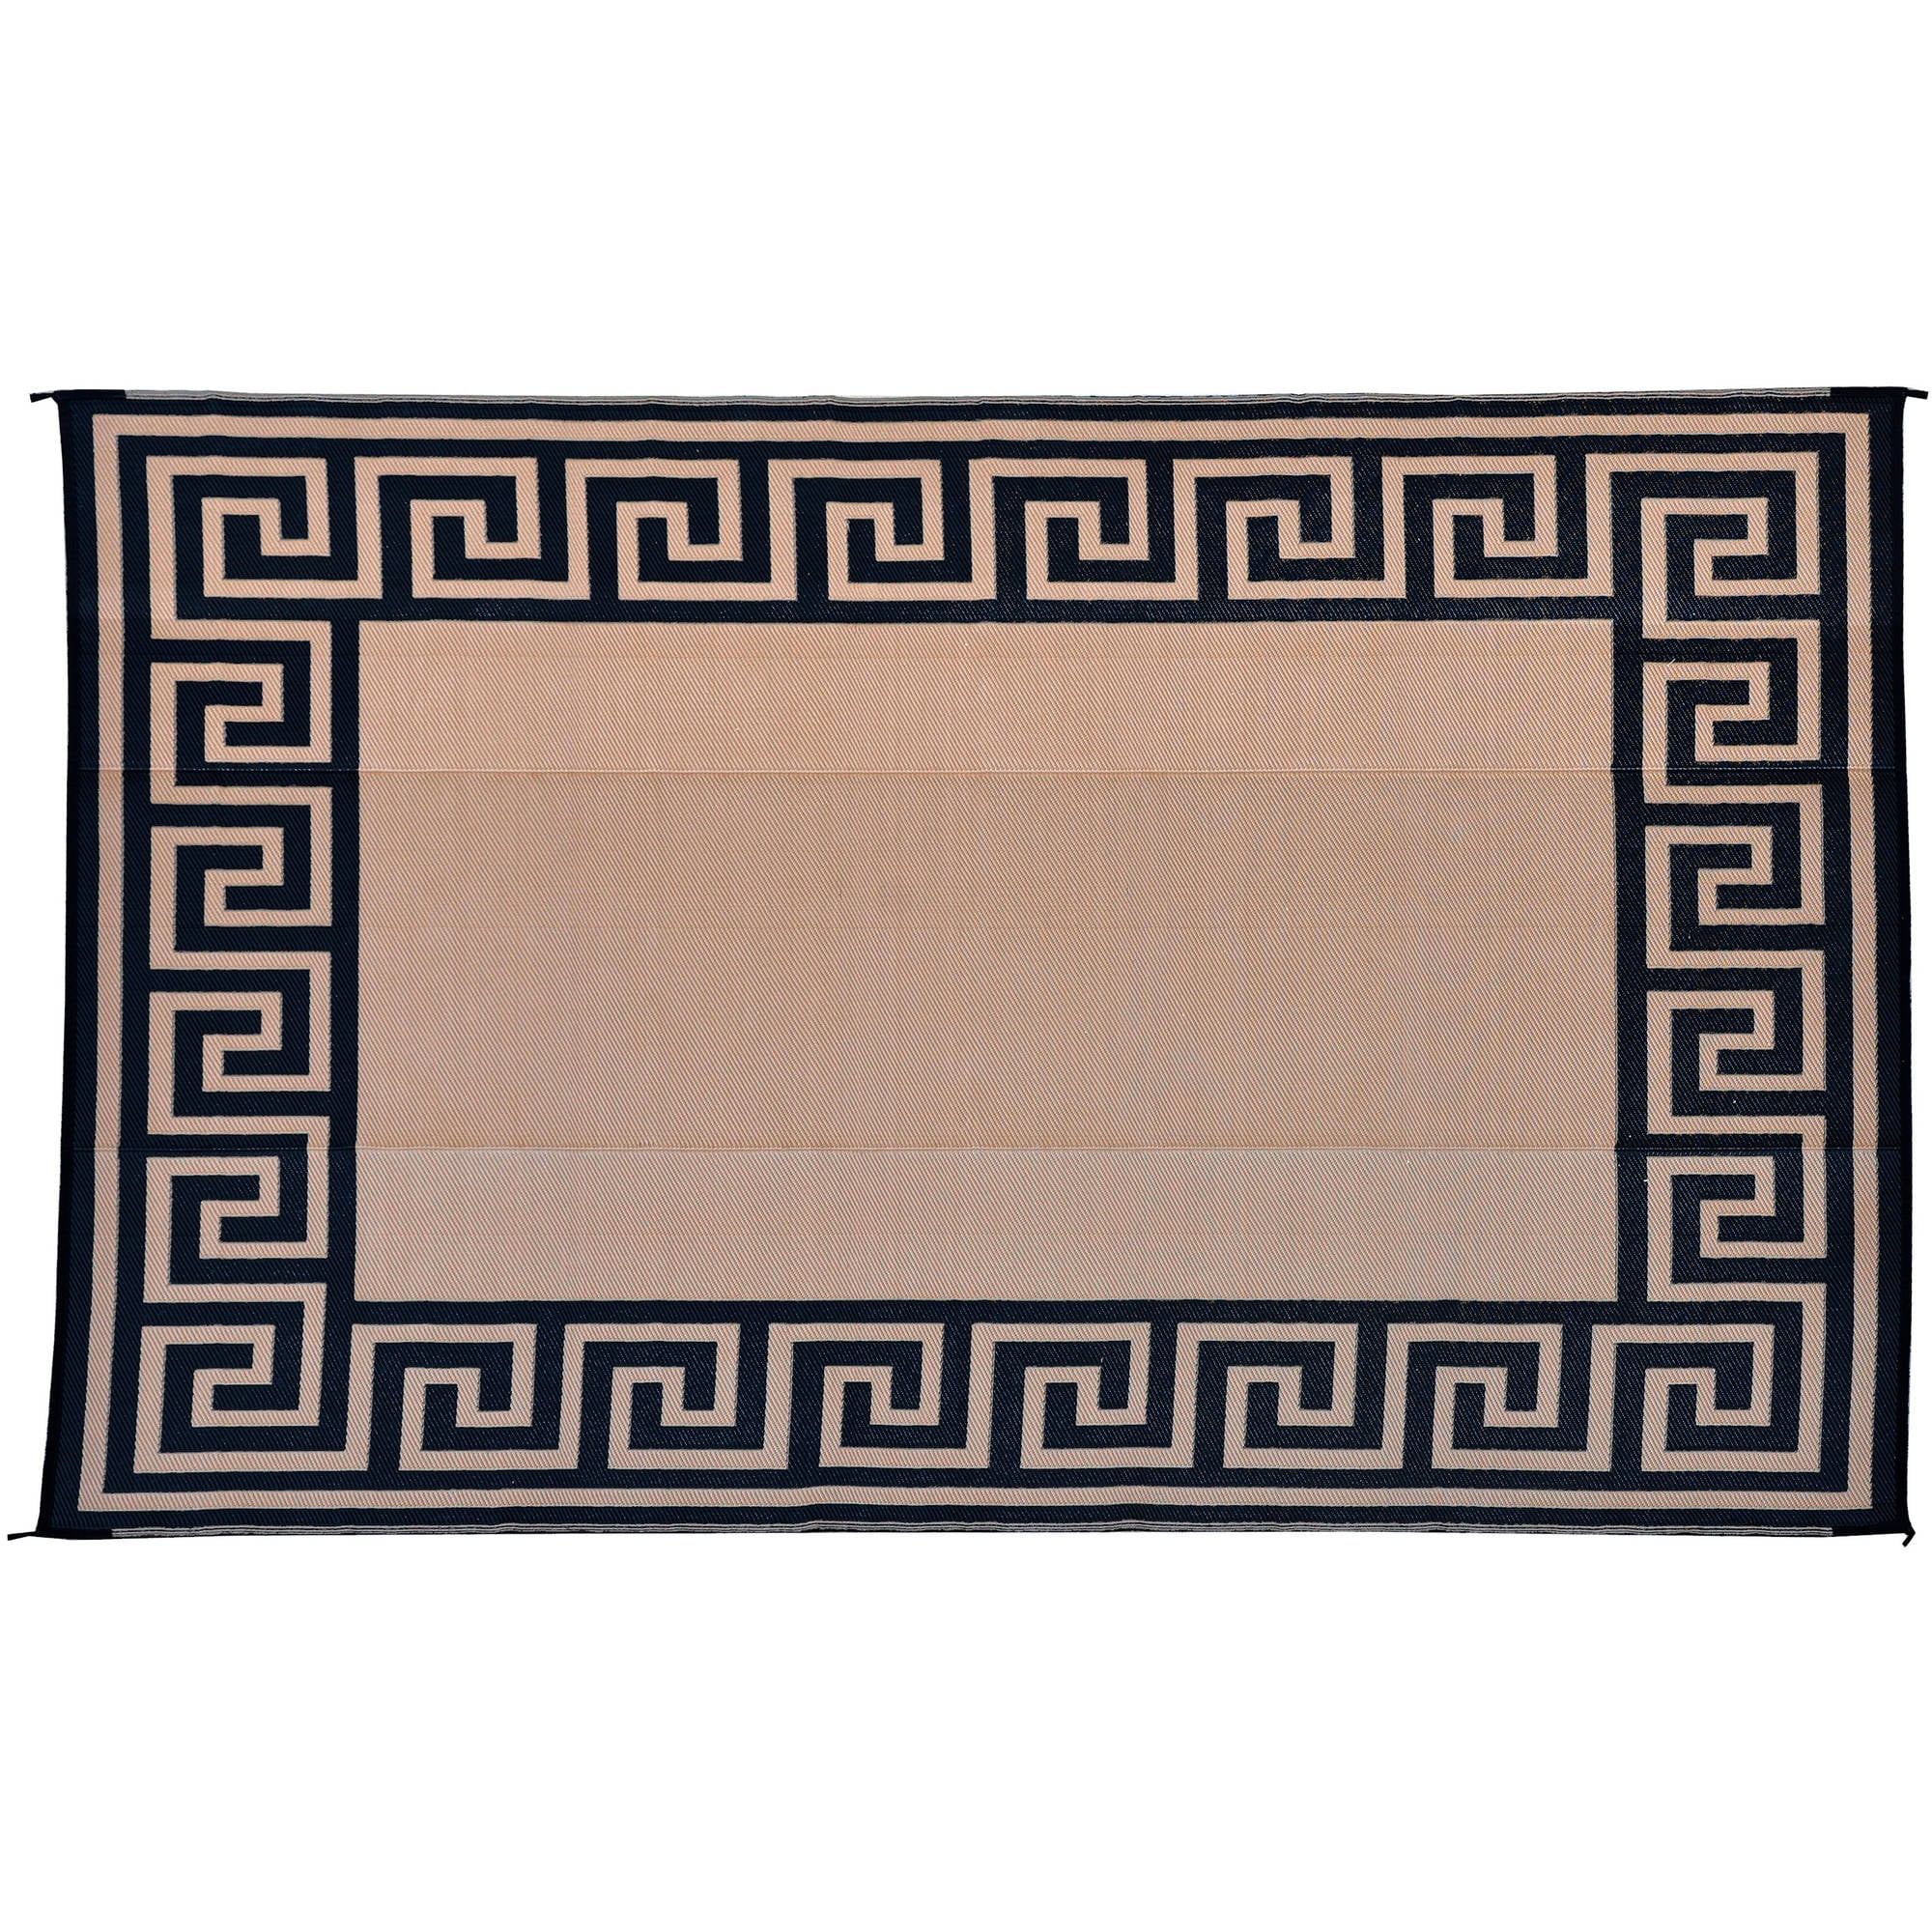 guide mats pattern gear co house scroll x outdoor decor reversible tulum rug smsender patio fabulous concept